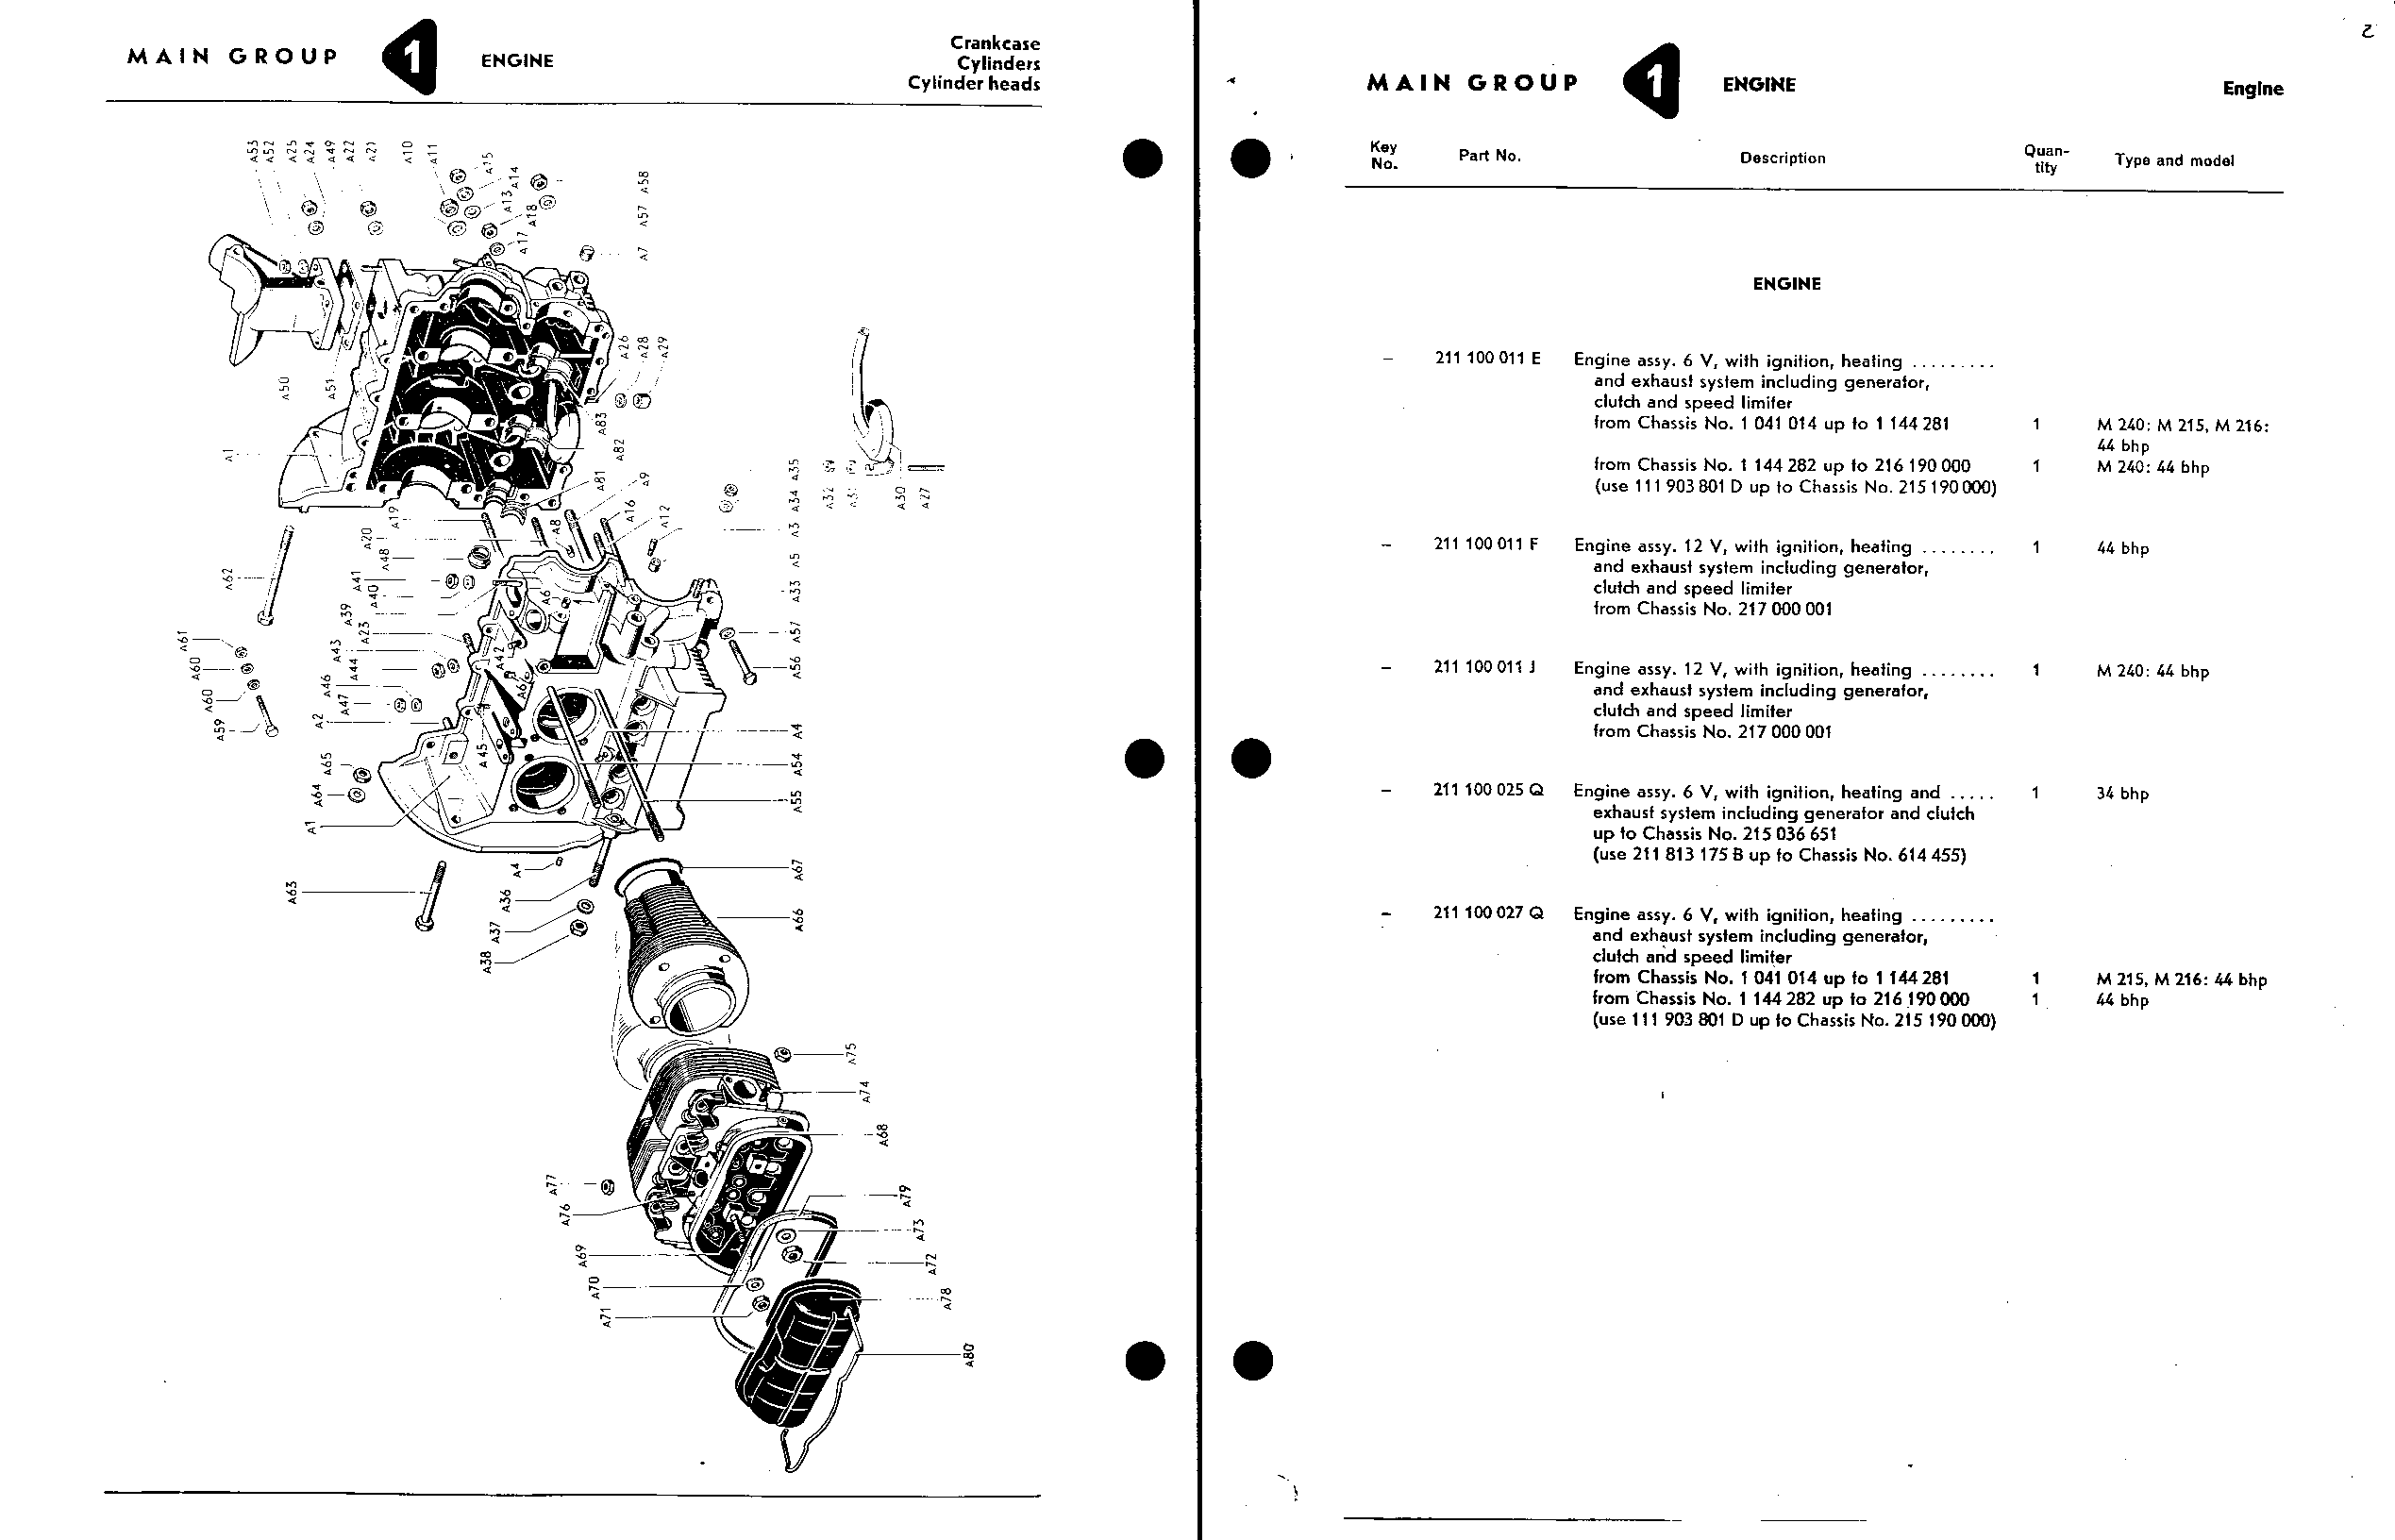 vw type 1 engine diagram  vw  free engine image for user